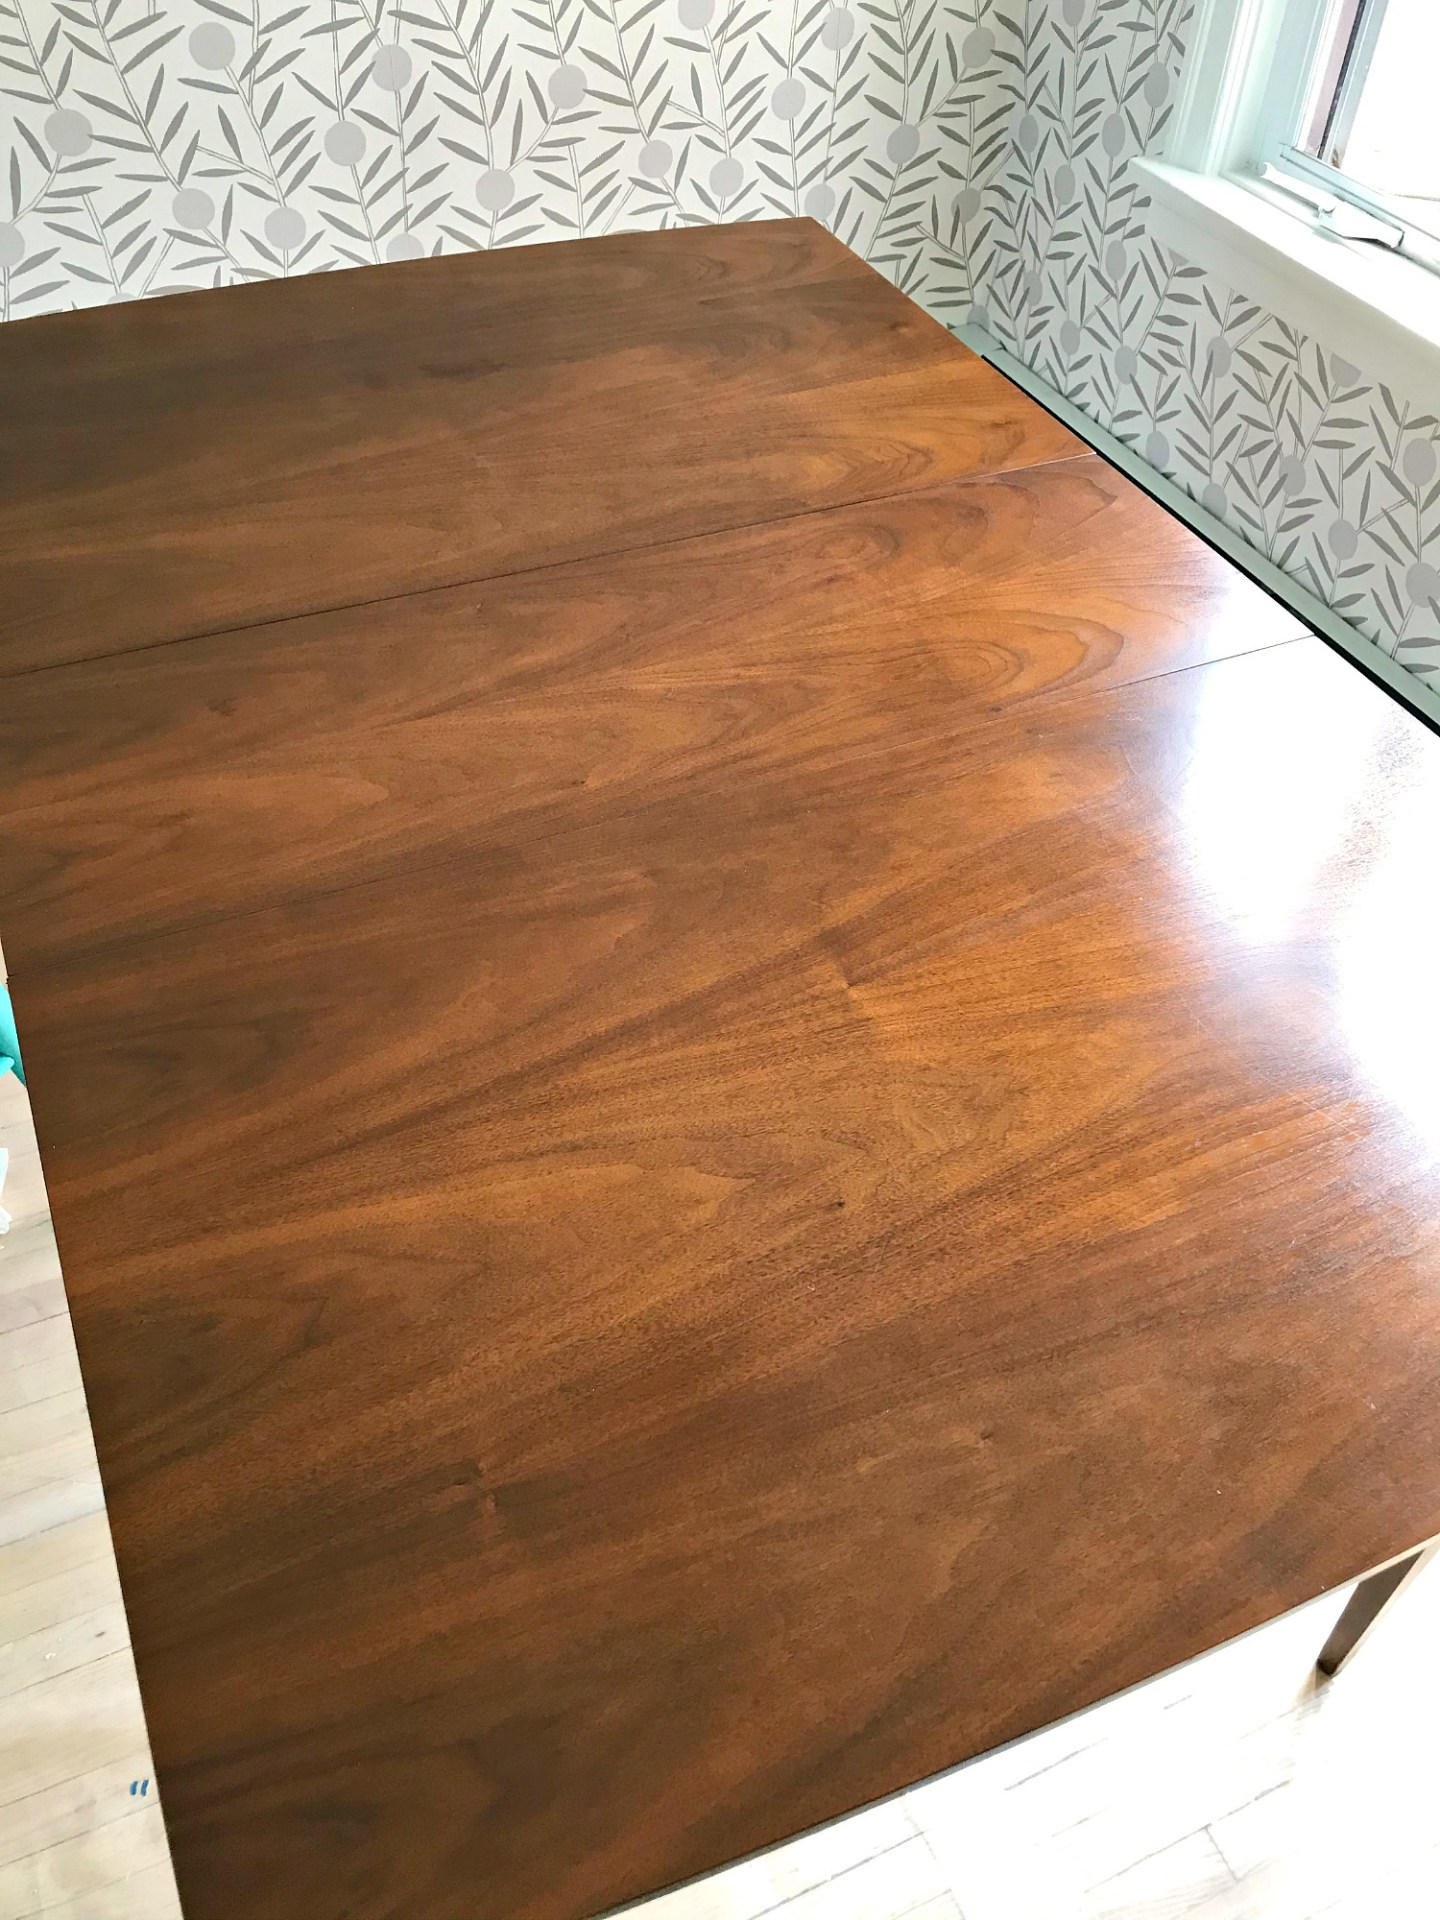 Refinish wood without stripping or sanding